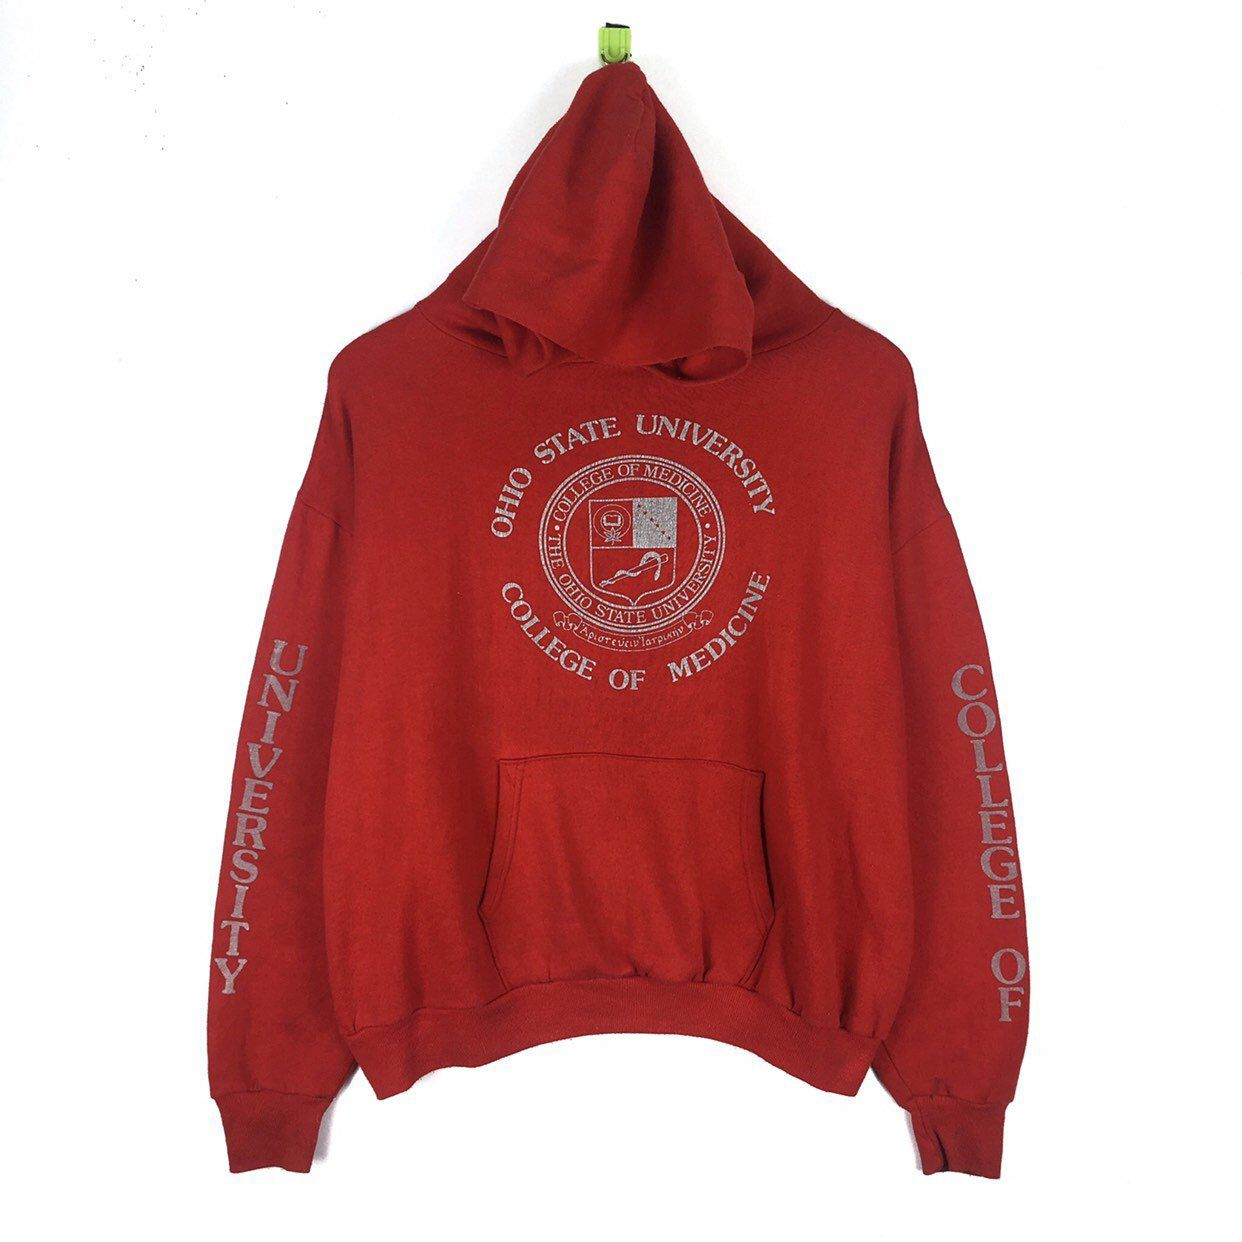 Excited To Share This Item From My Etsy Shop Vintage Ohio State University Sweatshirt Hoodie Collage Of Sweatshirts Sweatshirts Hoodie University Sweatshirts [ 1242 x 1242 Pixel ]